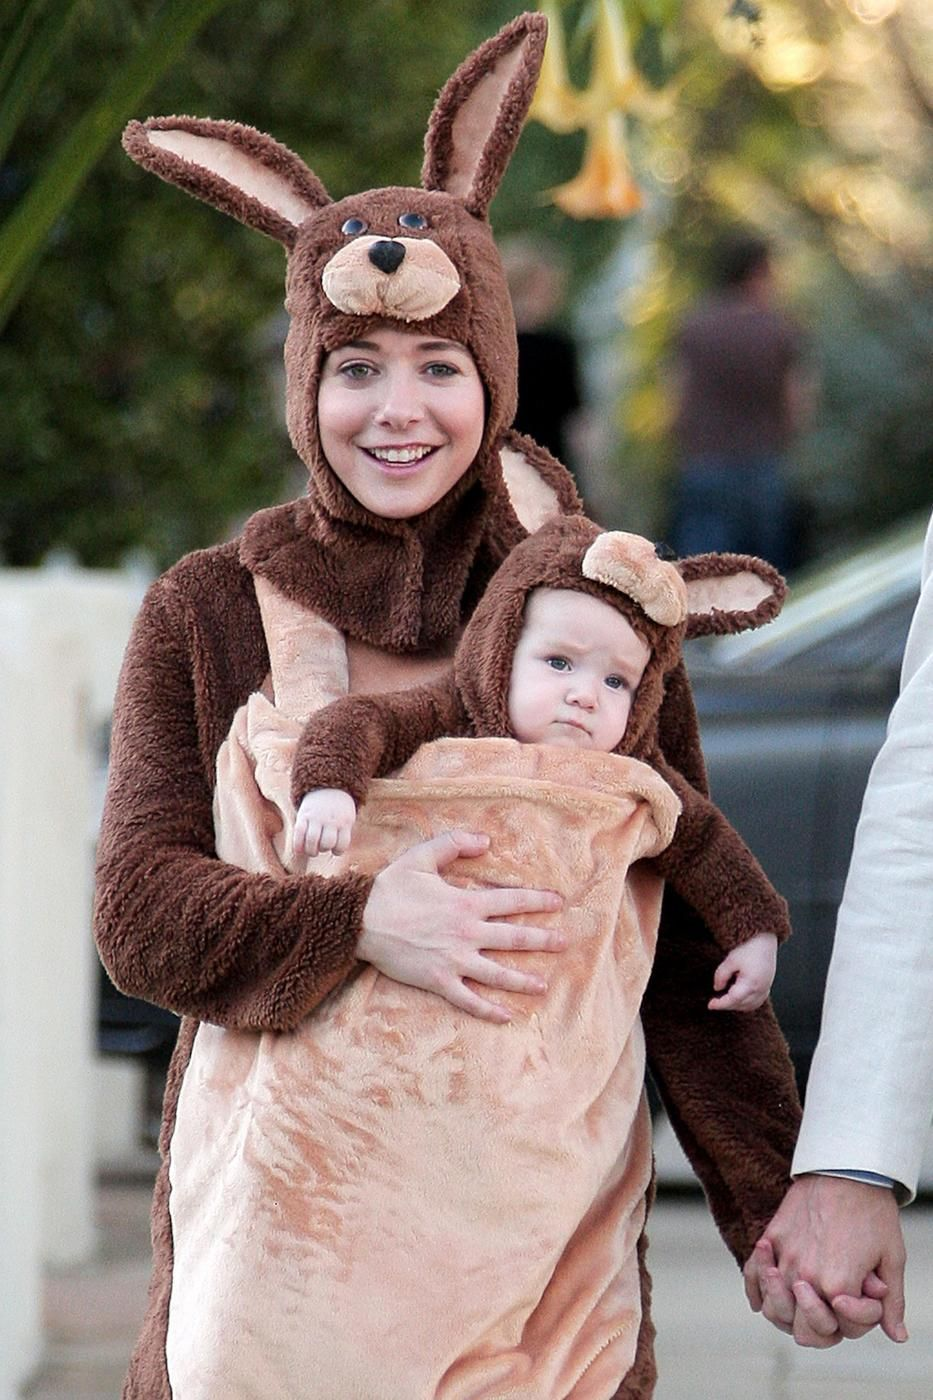 e1663d527d17 Alyson Hannigan wore her - then young - daughter Satyana as a baby kangaroo.